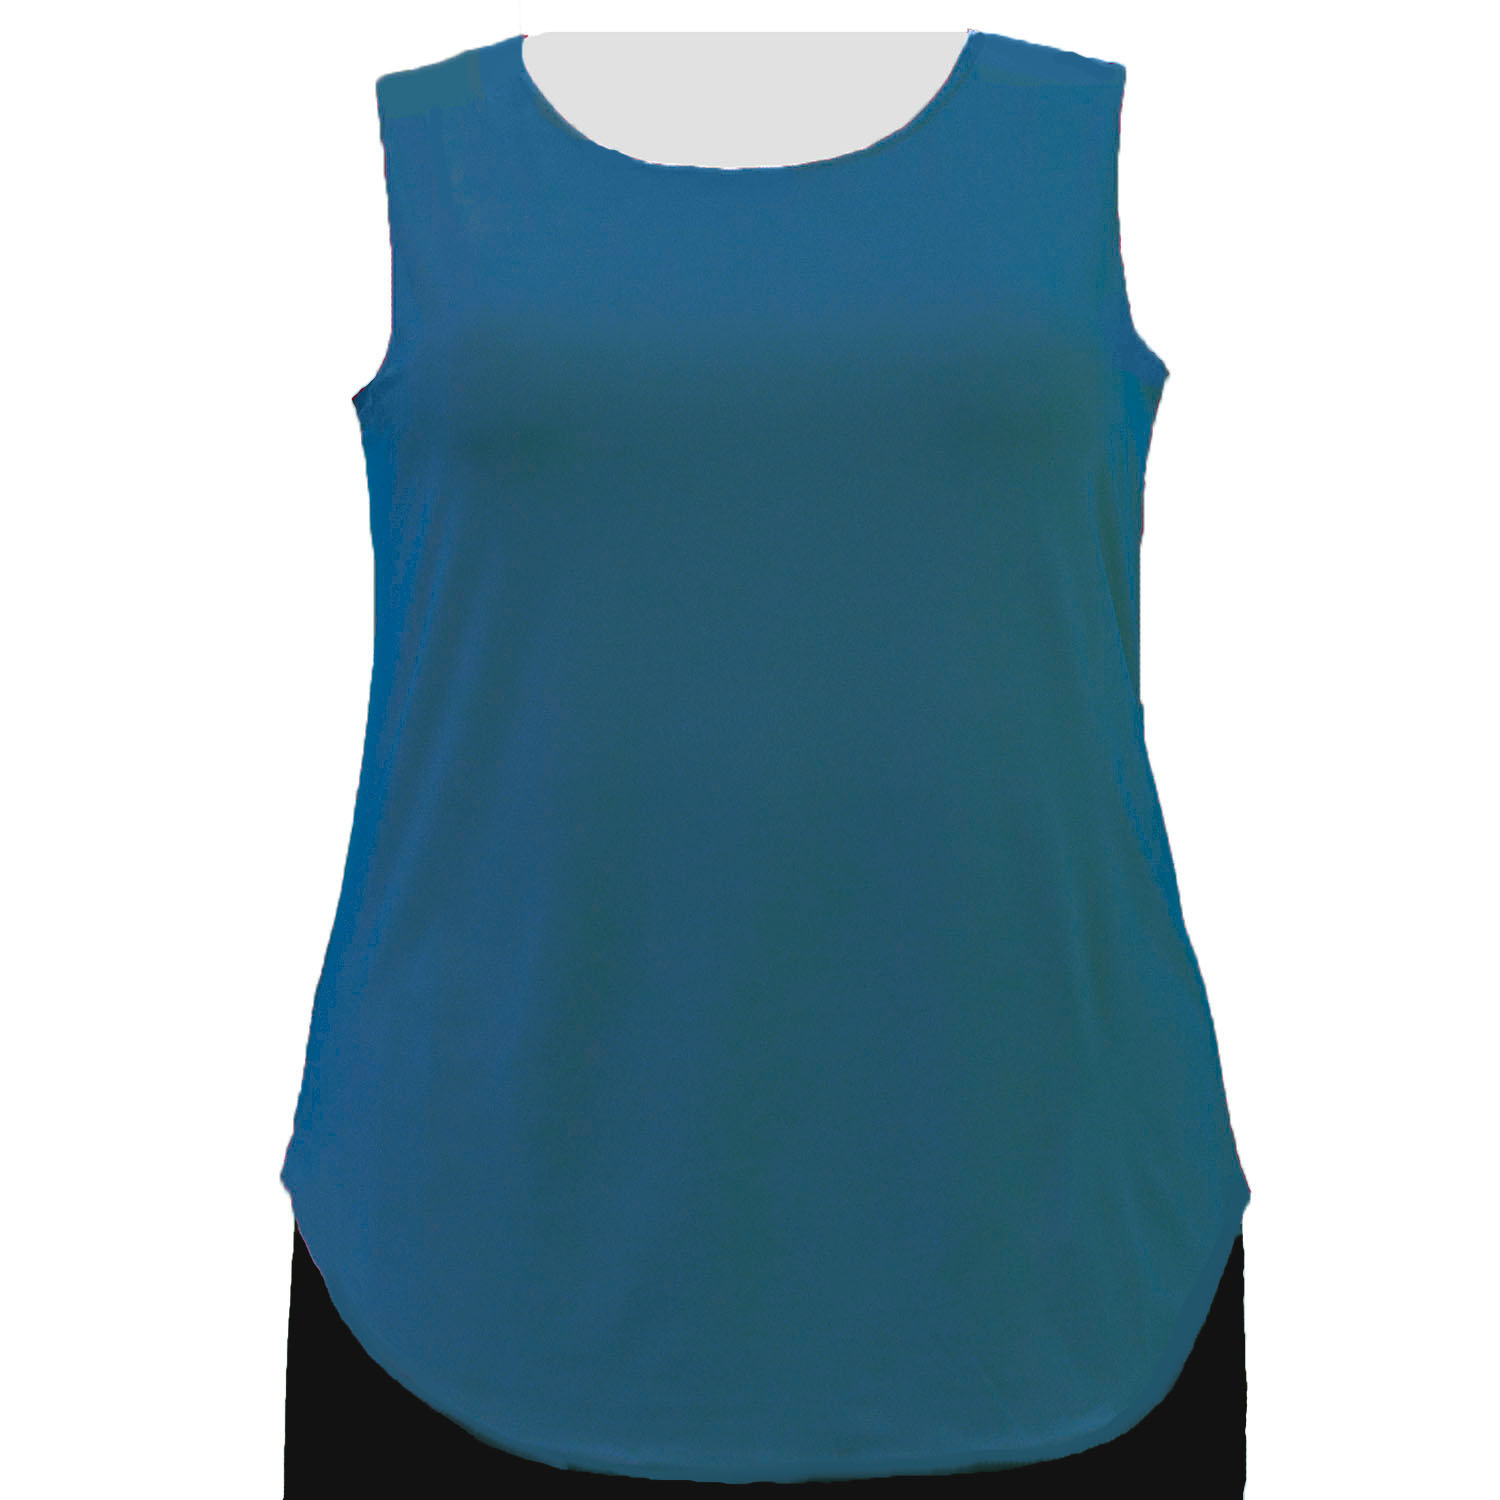 A Personal Touch Teal Tank Top Women's Plus Size Tank Top